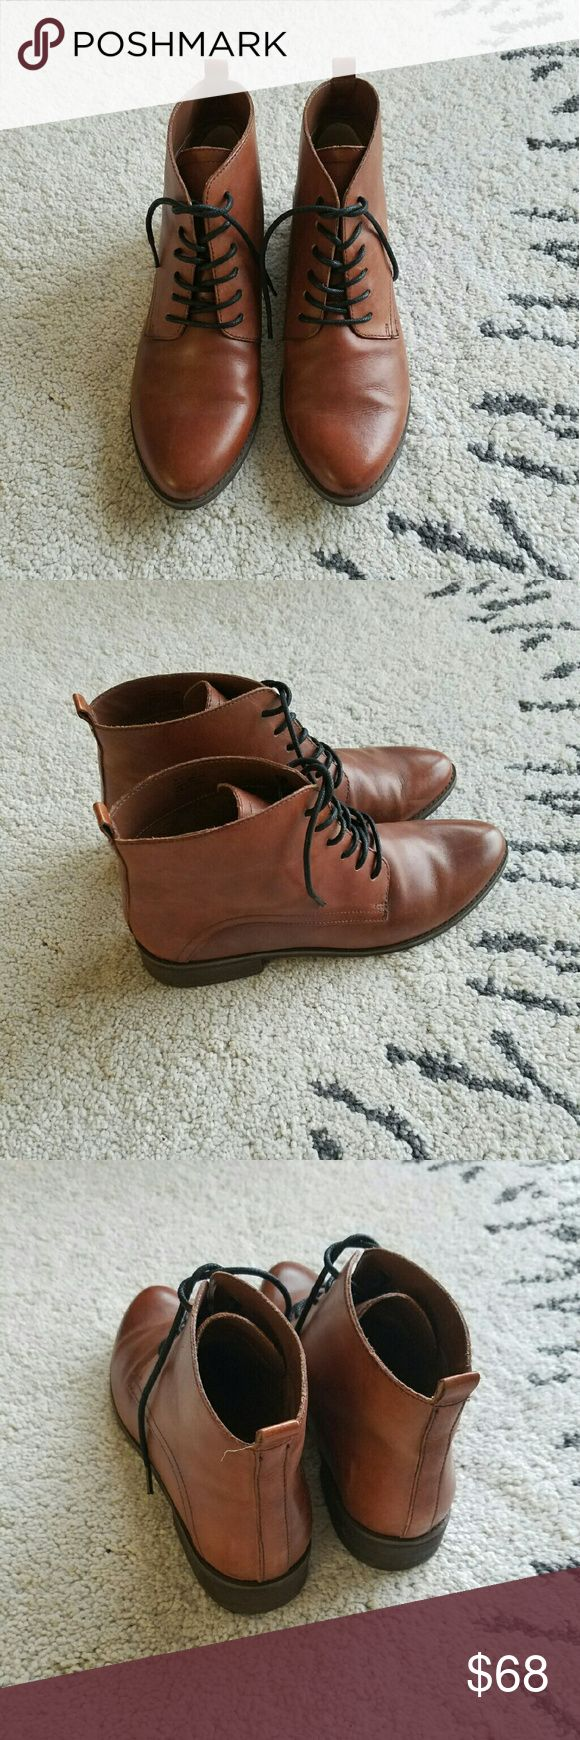 Leather Lace-Up Boots Gorgeous brown leather lace-up boots from Seychelles. Display pair, never been worn outside. A few minor scratches, but otherwise like new! Seychelles Shoes Ankle Boots & Booties